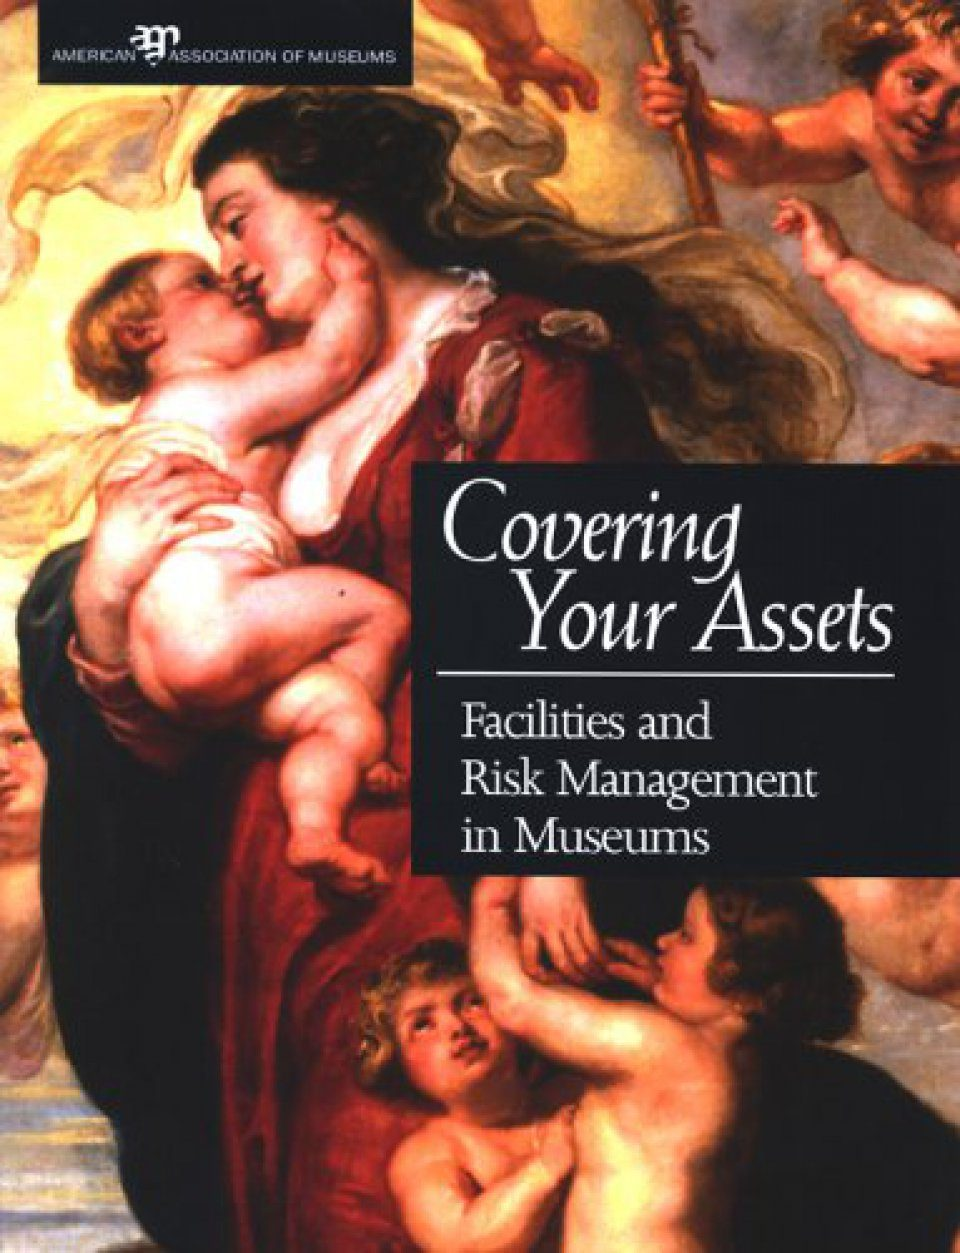 Covering Your Assets: Facilities and Risk Management in Museums